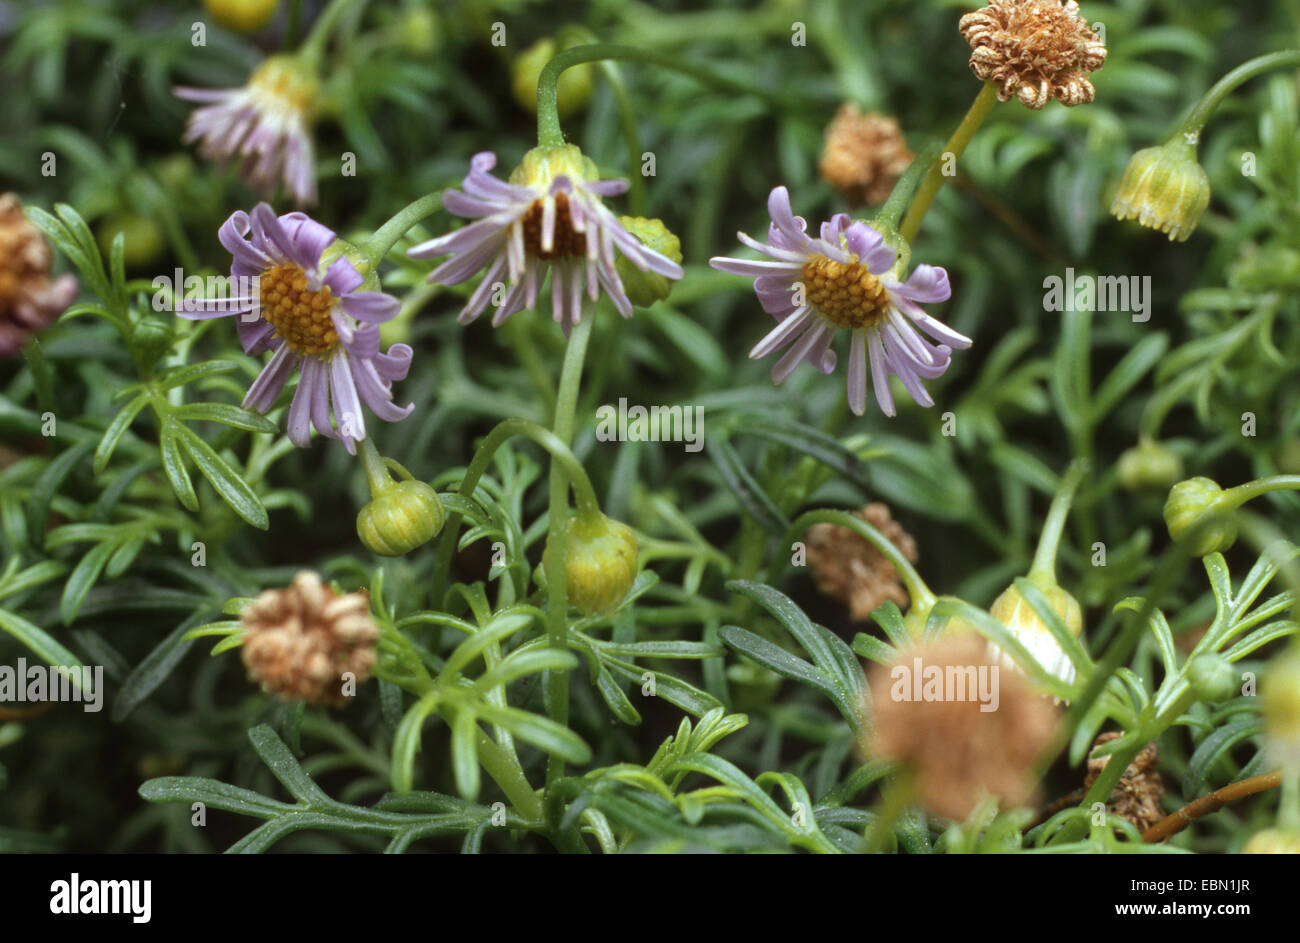 Swan river Daisy, Cut Leaf Daisy (Brachyscome spec.), blooming - Stock Image